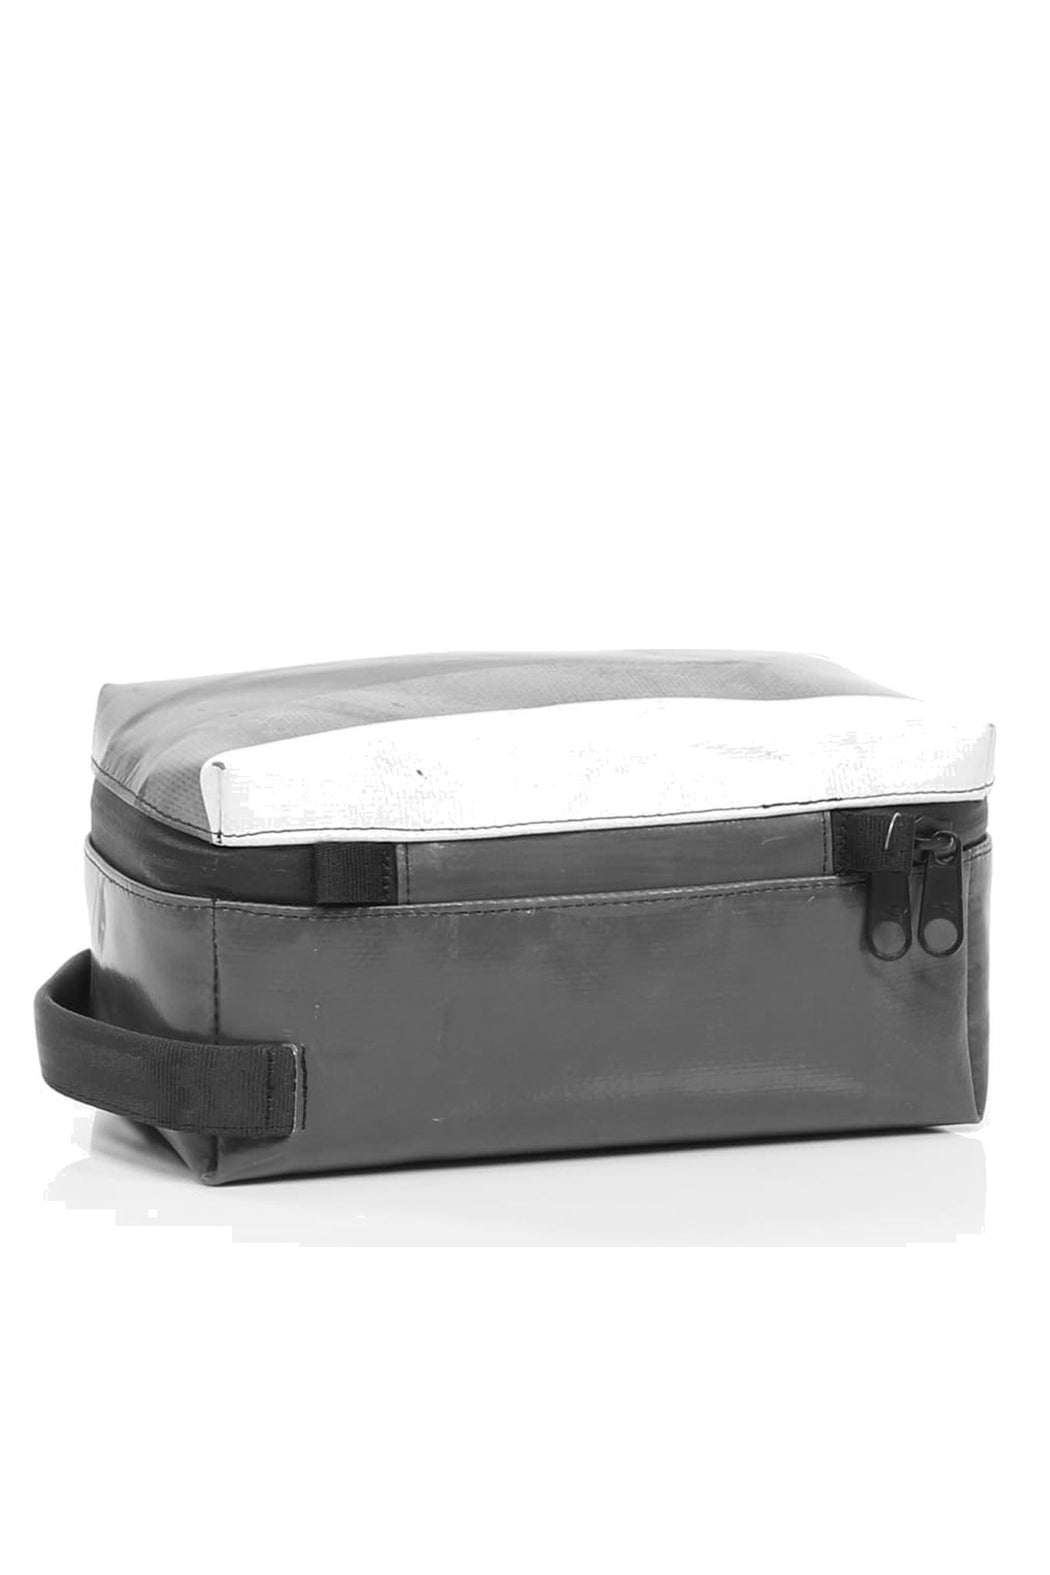 WAYNE F36 Toilet Bag medium